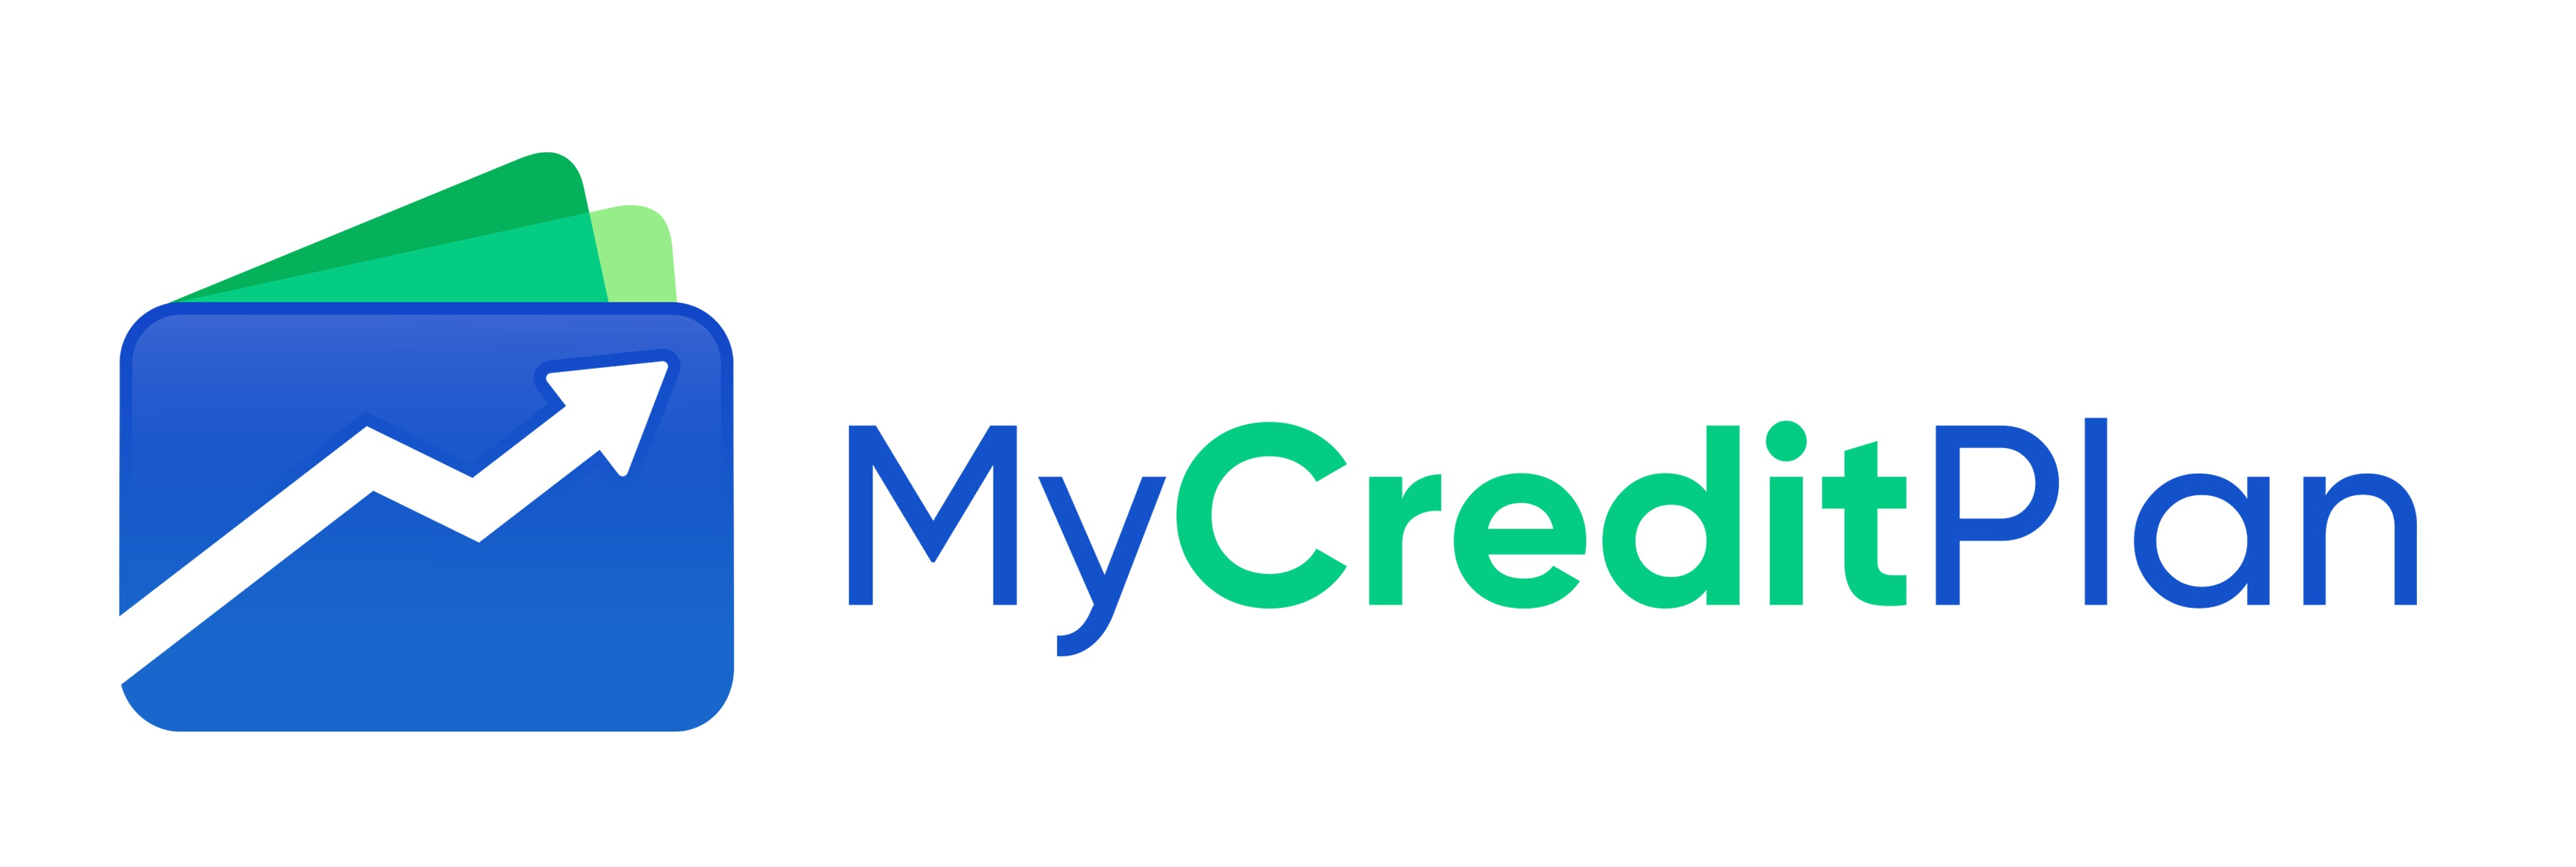 My Credit Plan